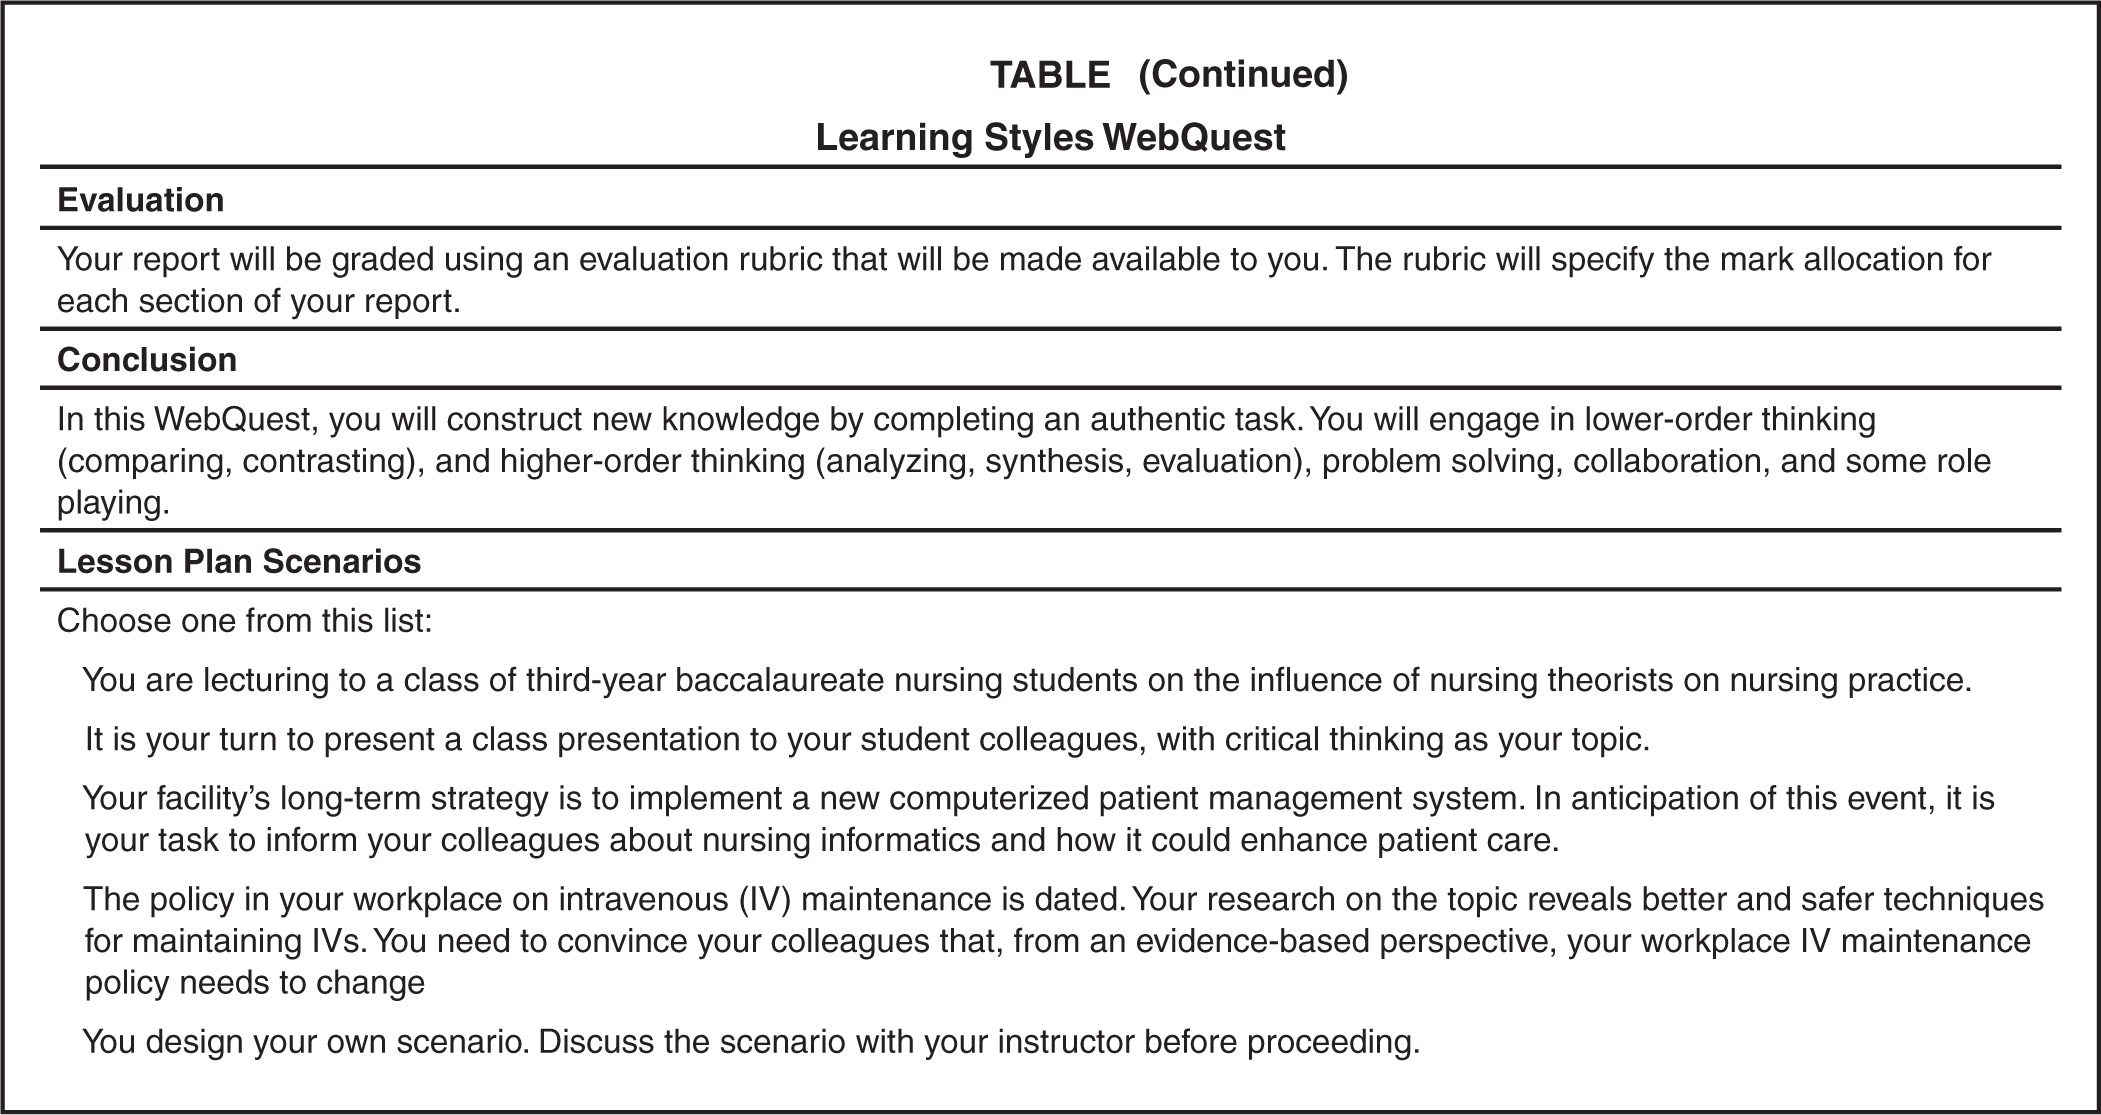 Online Journal Knowledge Synthesis Nursing